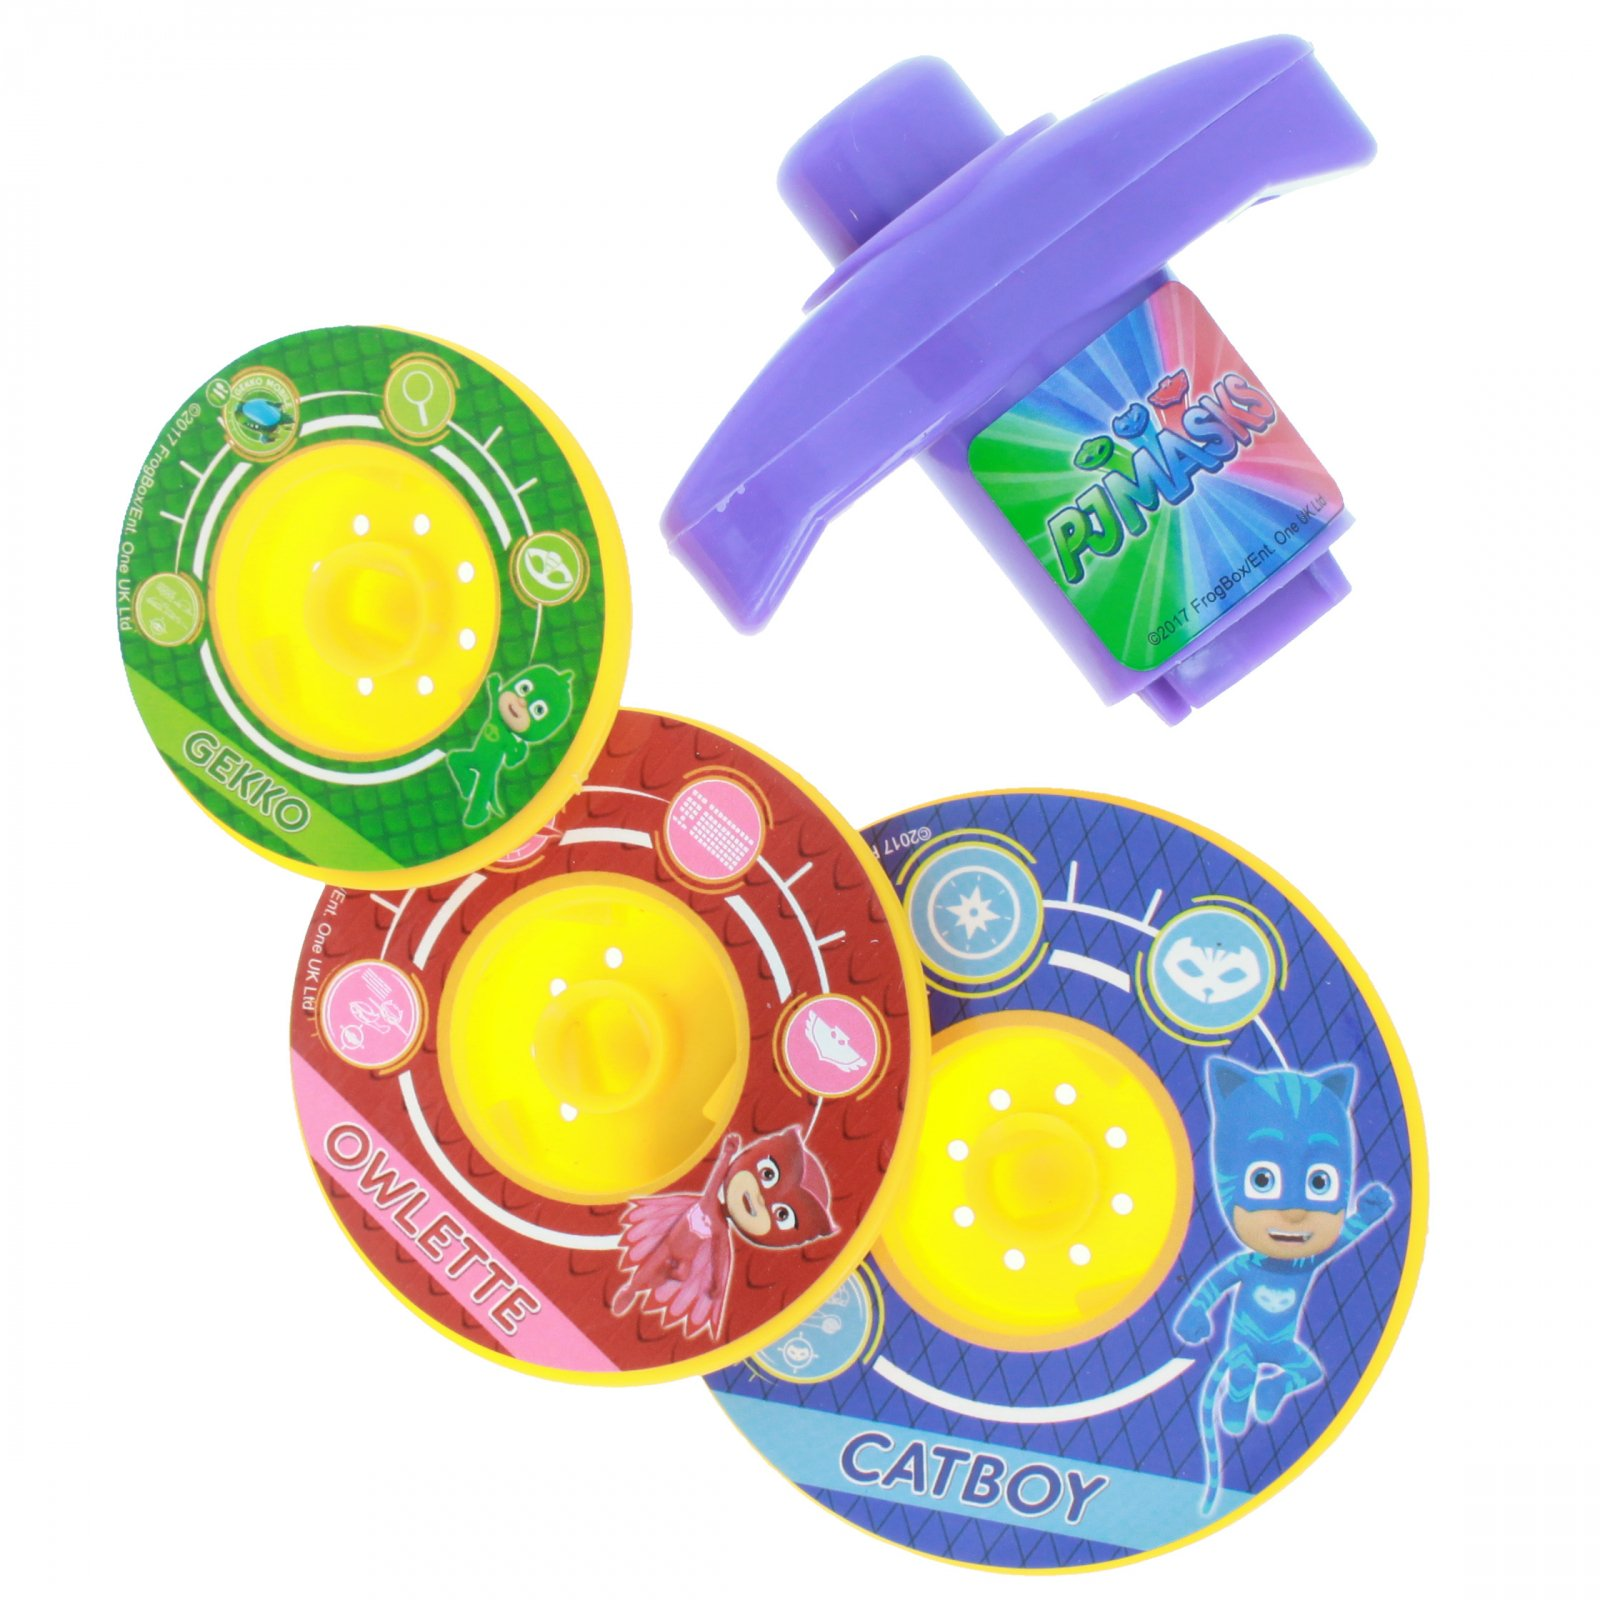 Disney PJ Masks Spinning Tops 3 Multi Colored tops and a Launcher